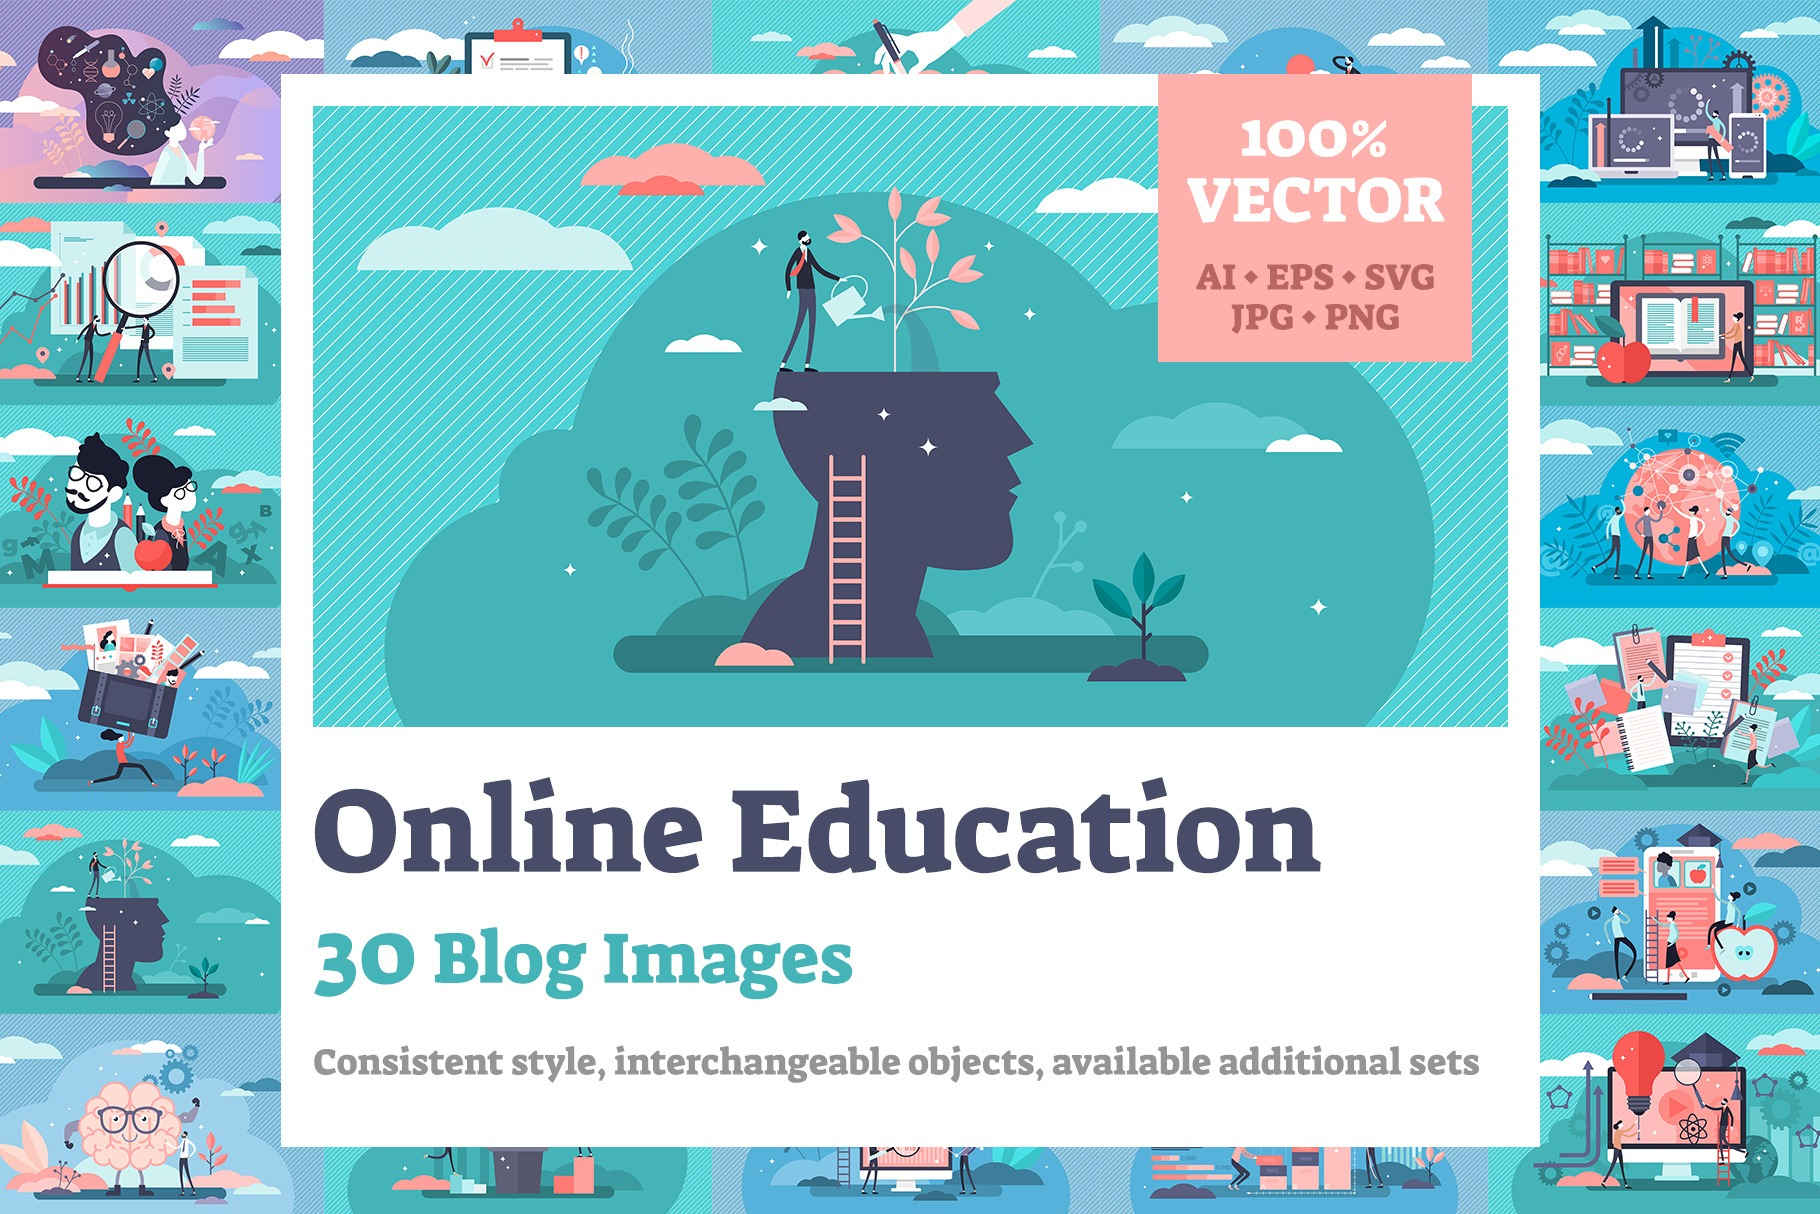 Online Education Blog Images (30 Illustrations)